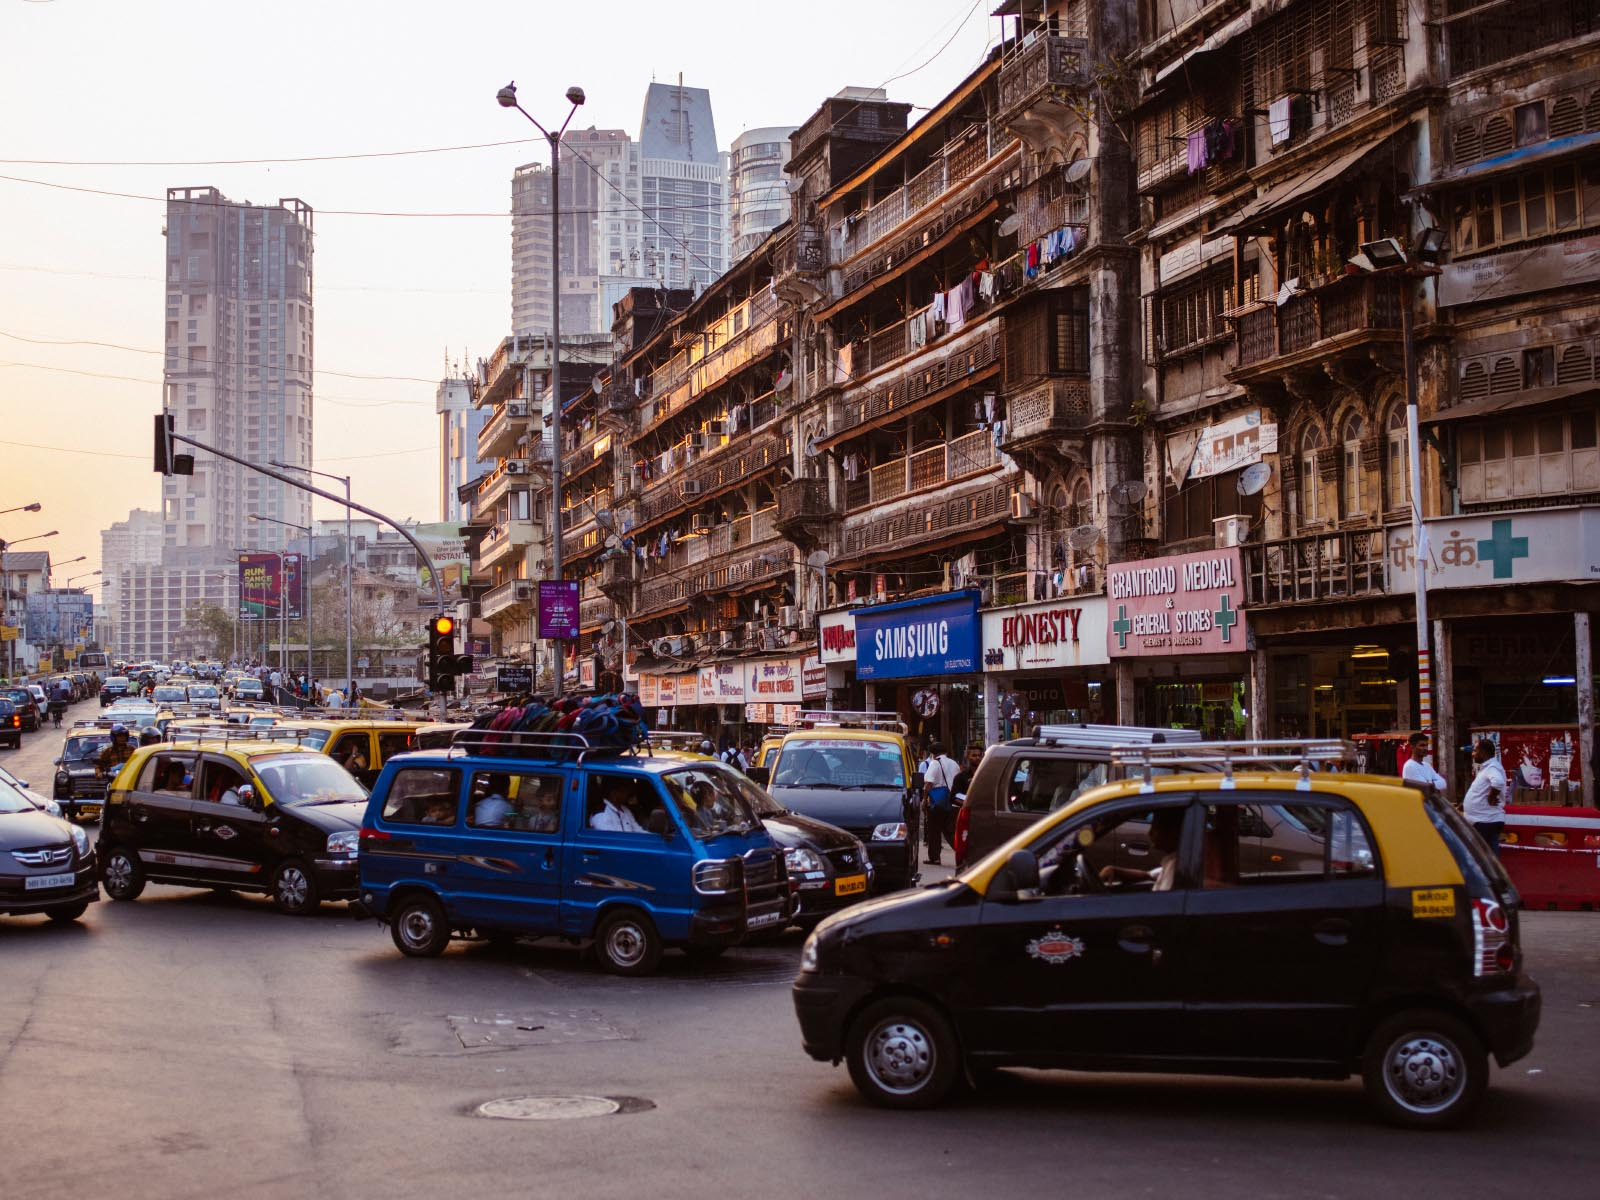 Our first stop: Bombay, India.